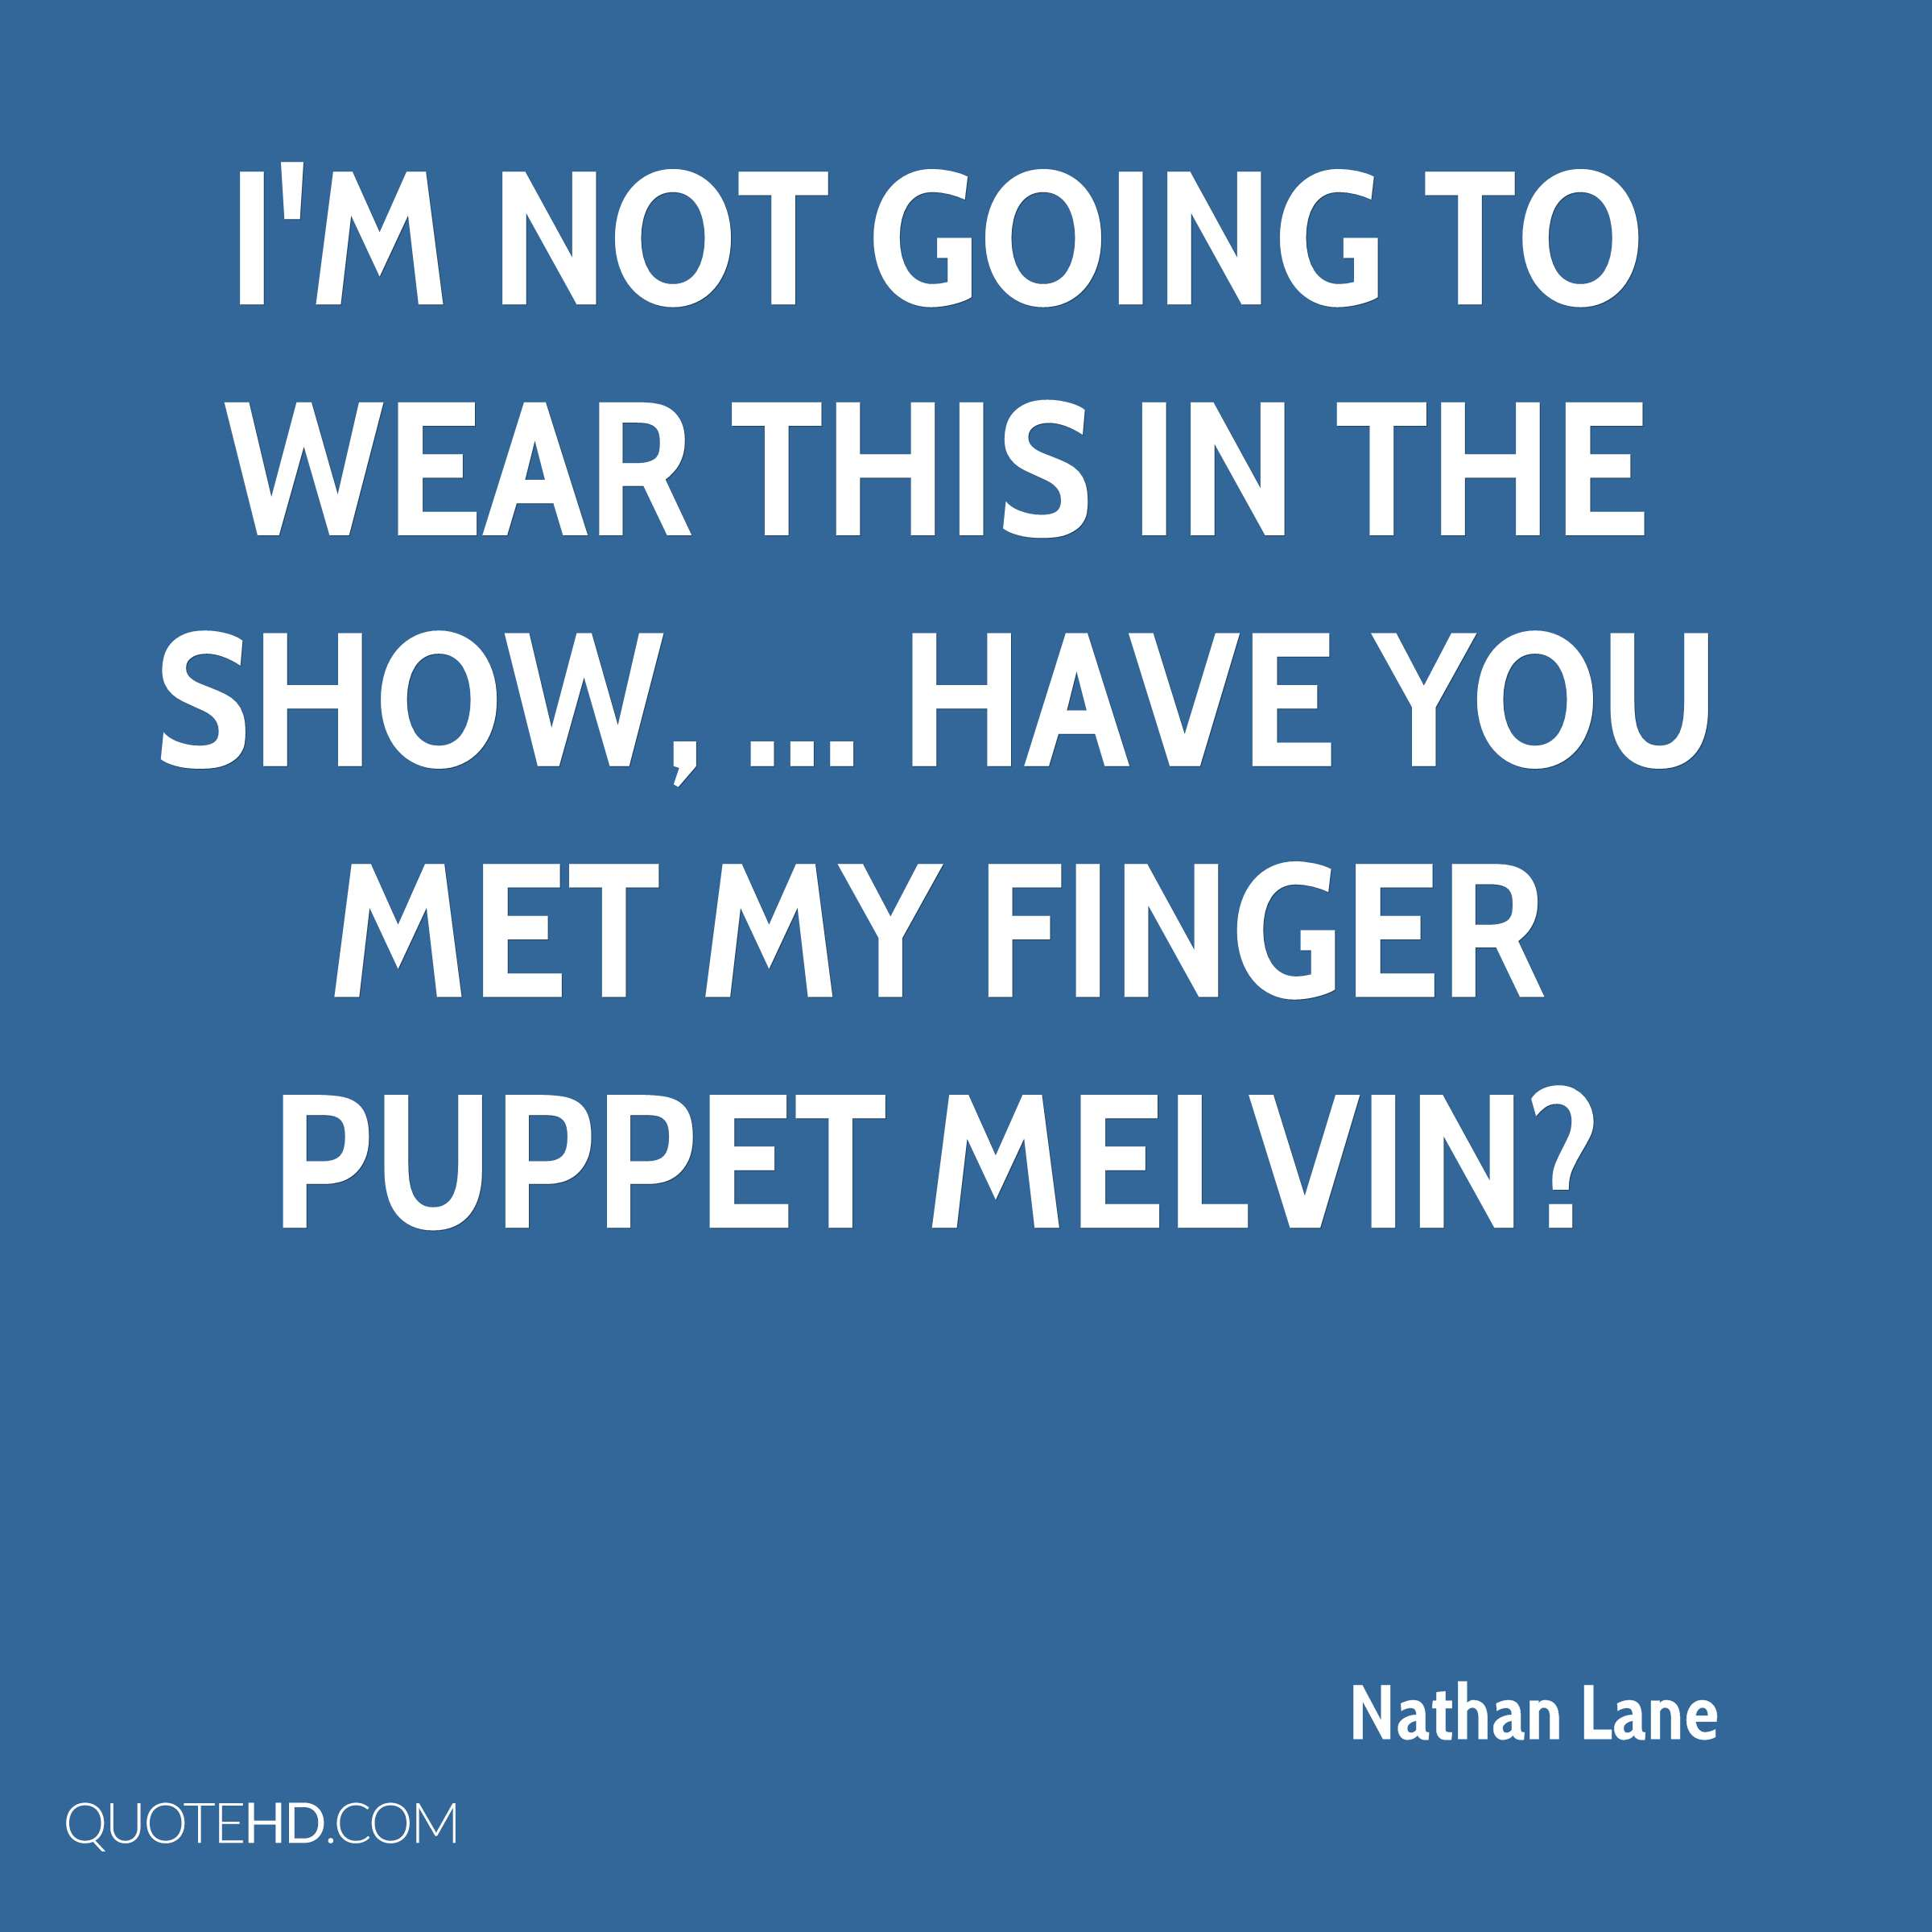 I'm not going to wear this in the show, ... Have you met my finger puppet Melvin?